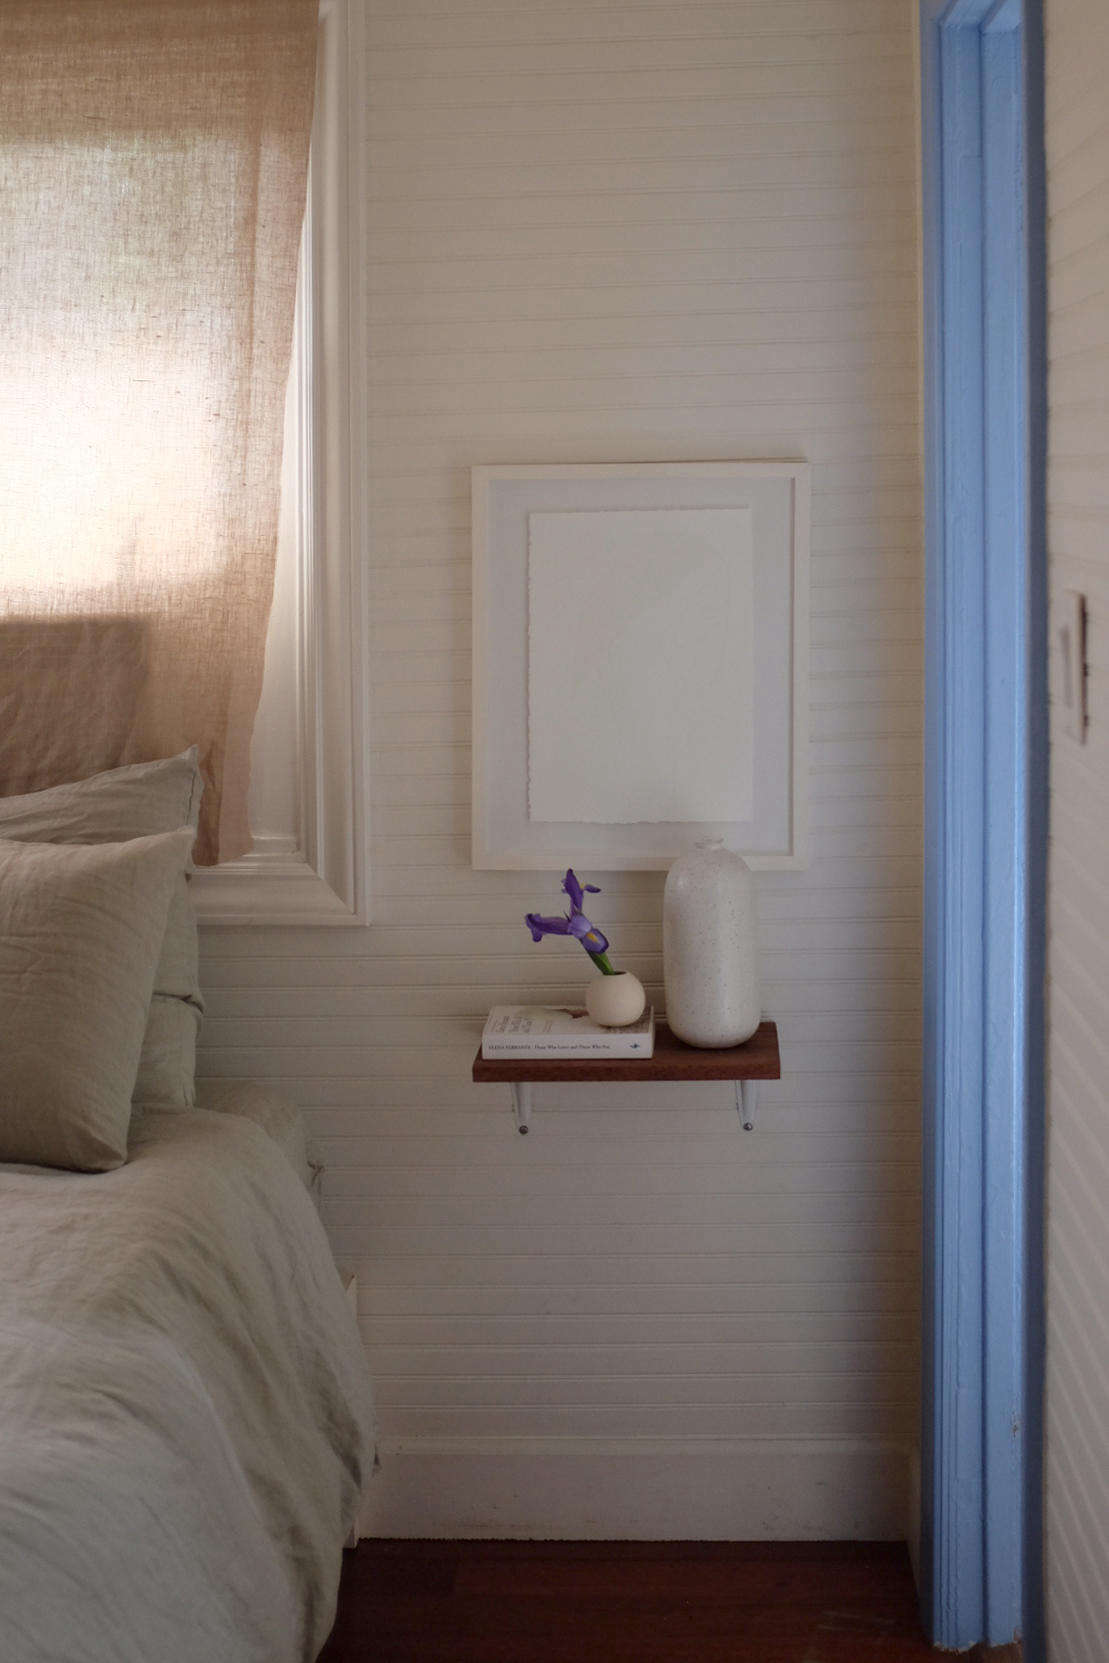 To save space, Alex and Jodi used small shelves in place of nightstands. The bed frame is from Ikea.